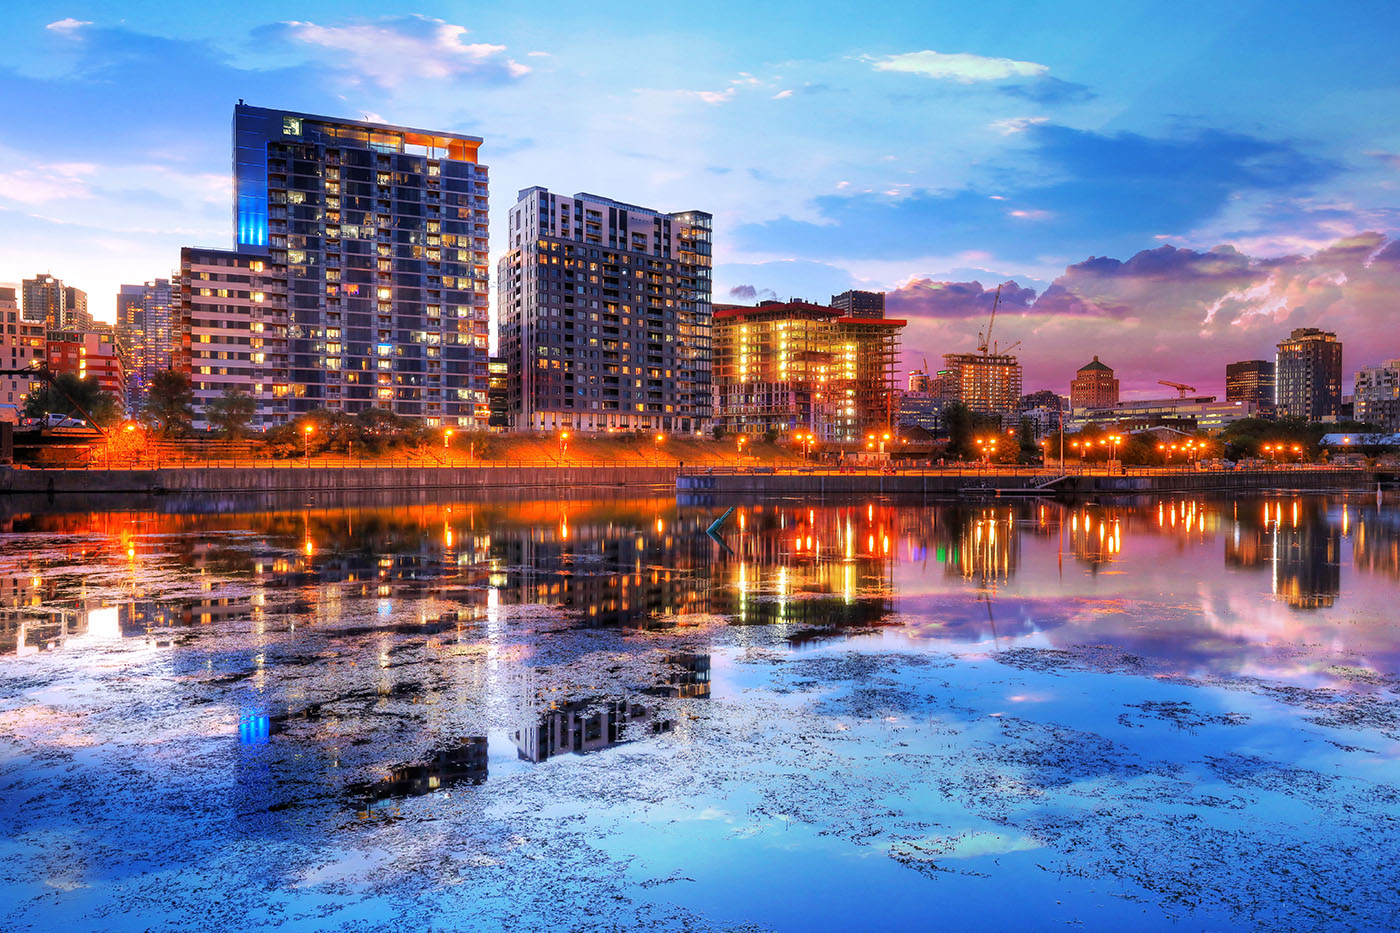 2020 Downtown Montreal City Water Reflection at Sunset - RF Stock Image